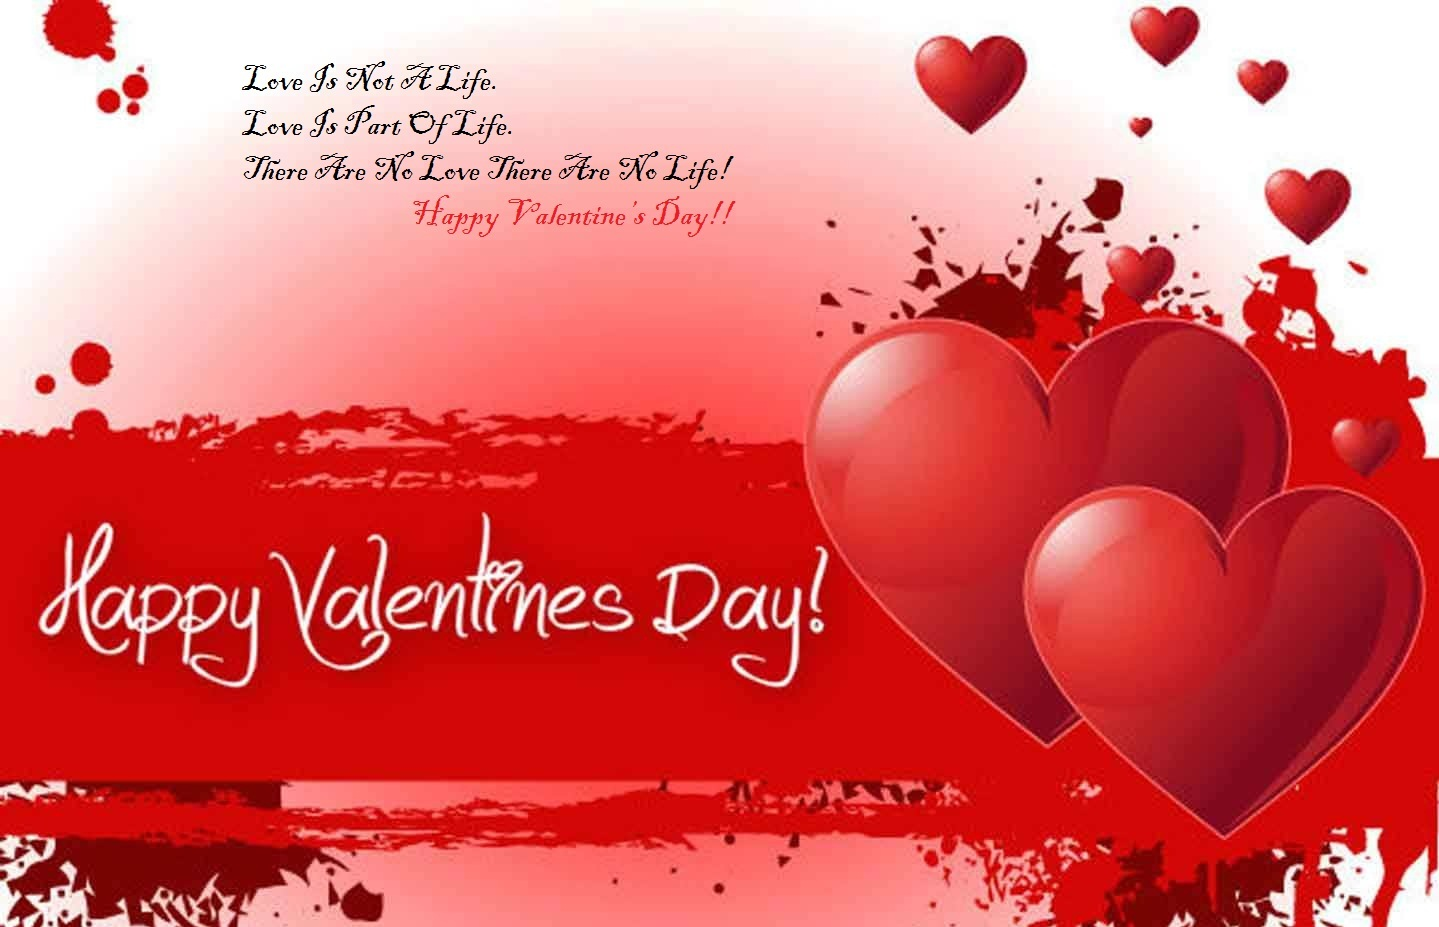 Best valentines day photo cards with quotes download happy valentine day greeting cards m4hsunfo